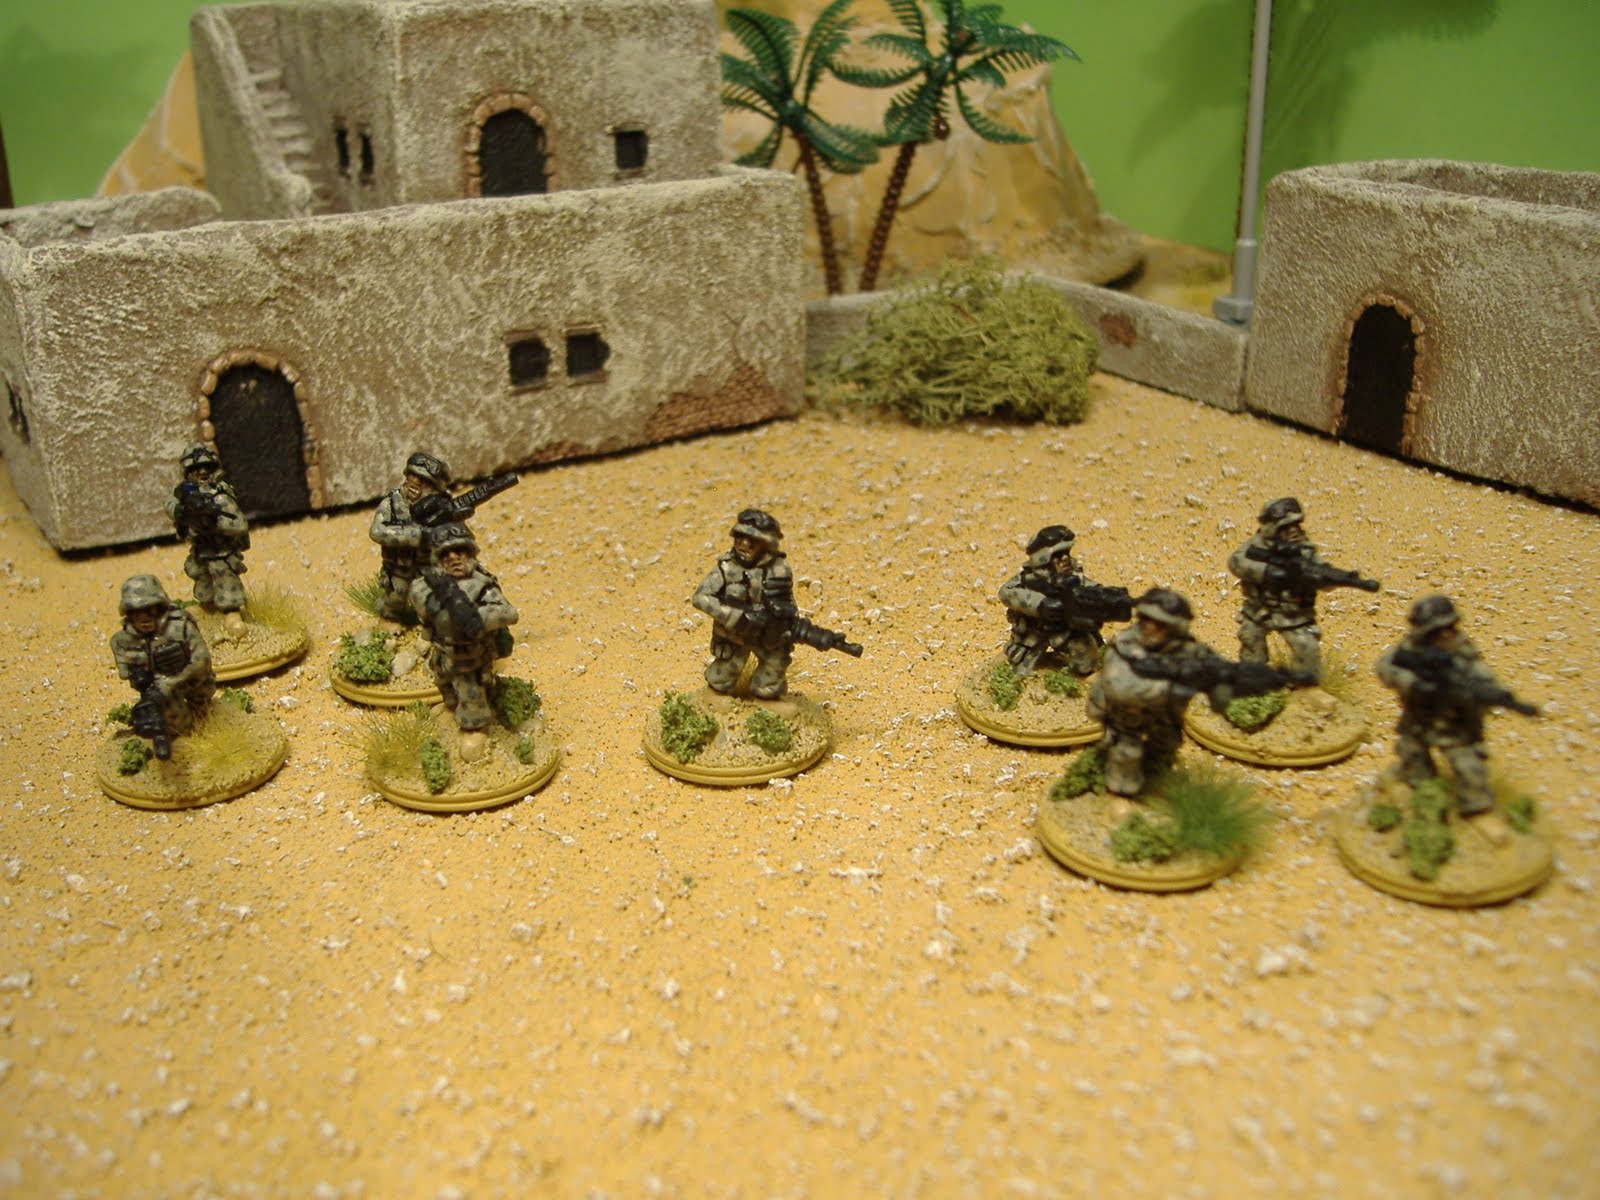 SmallScaleOperations Wargaming Moderns Historical And Sci Fi With 15mm 20mm And 28mm